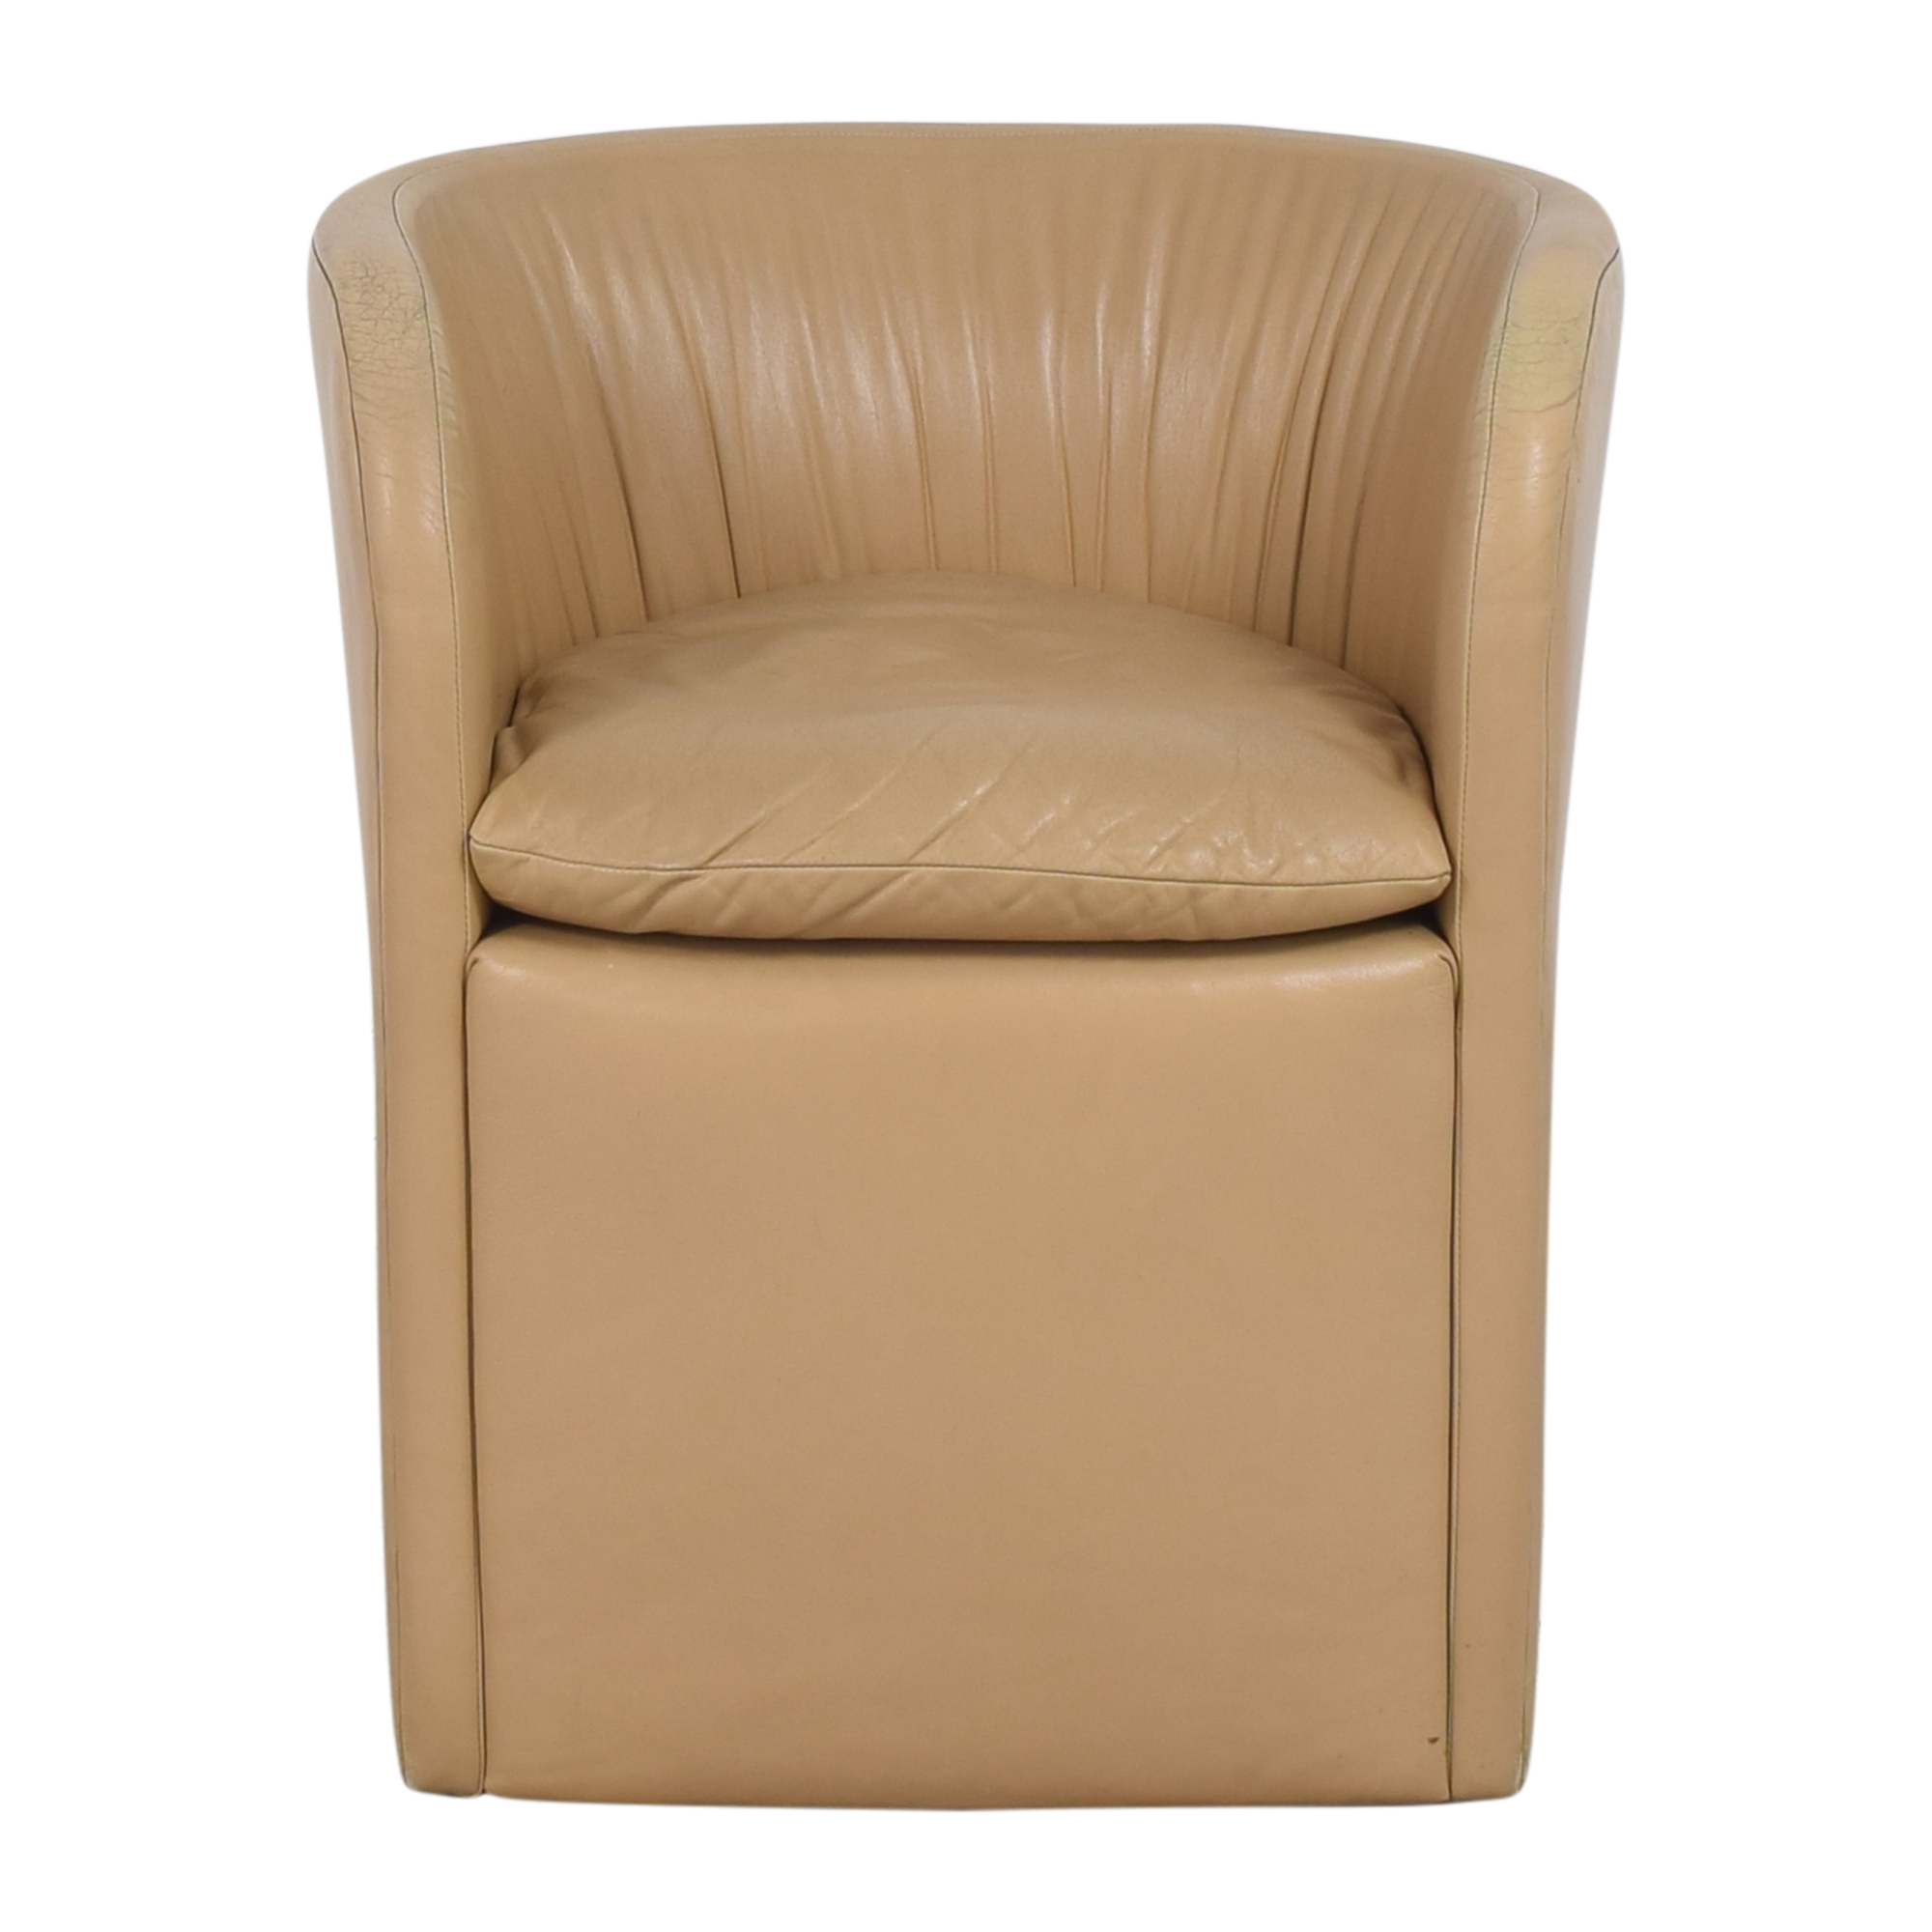 David Edward David Edward by John Saladino Barrel Chair on sale